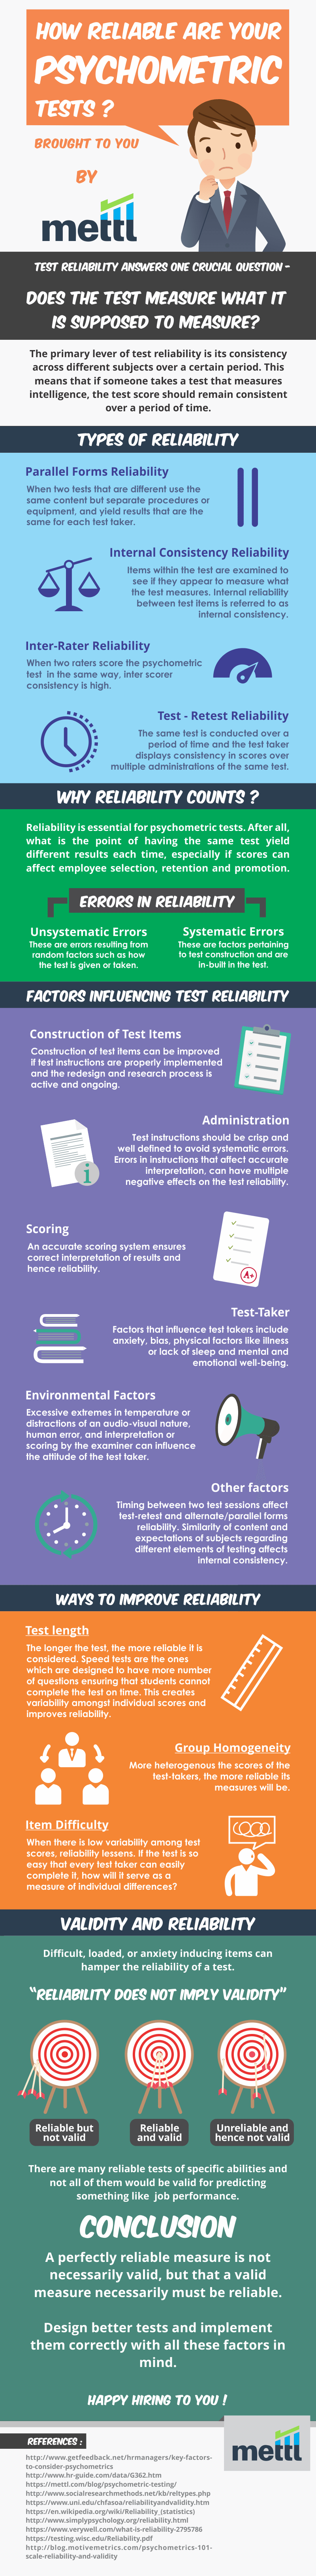 Mettl Infographic - How reliable are your psychometric tests